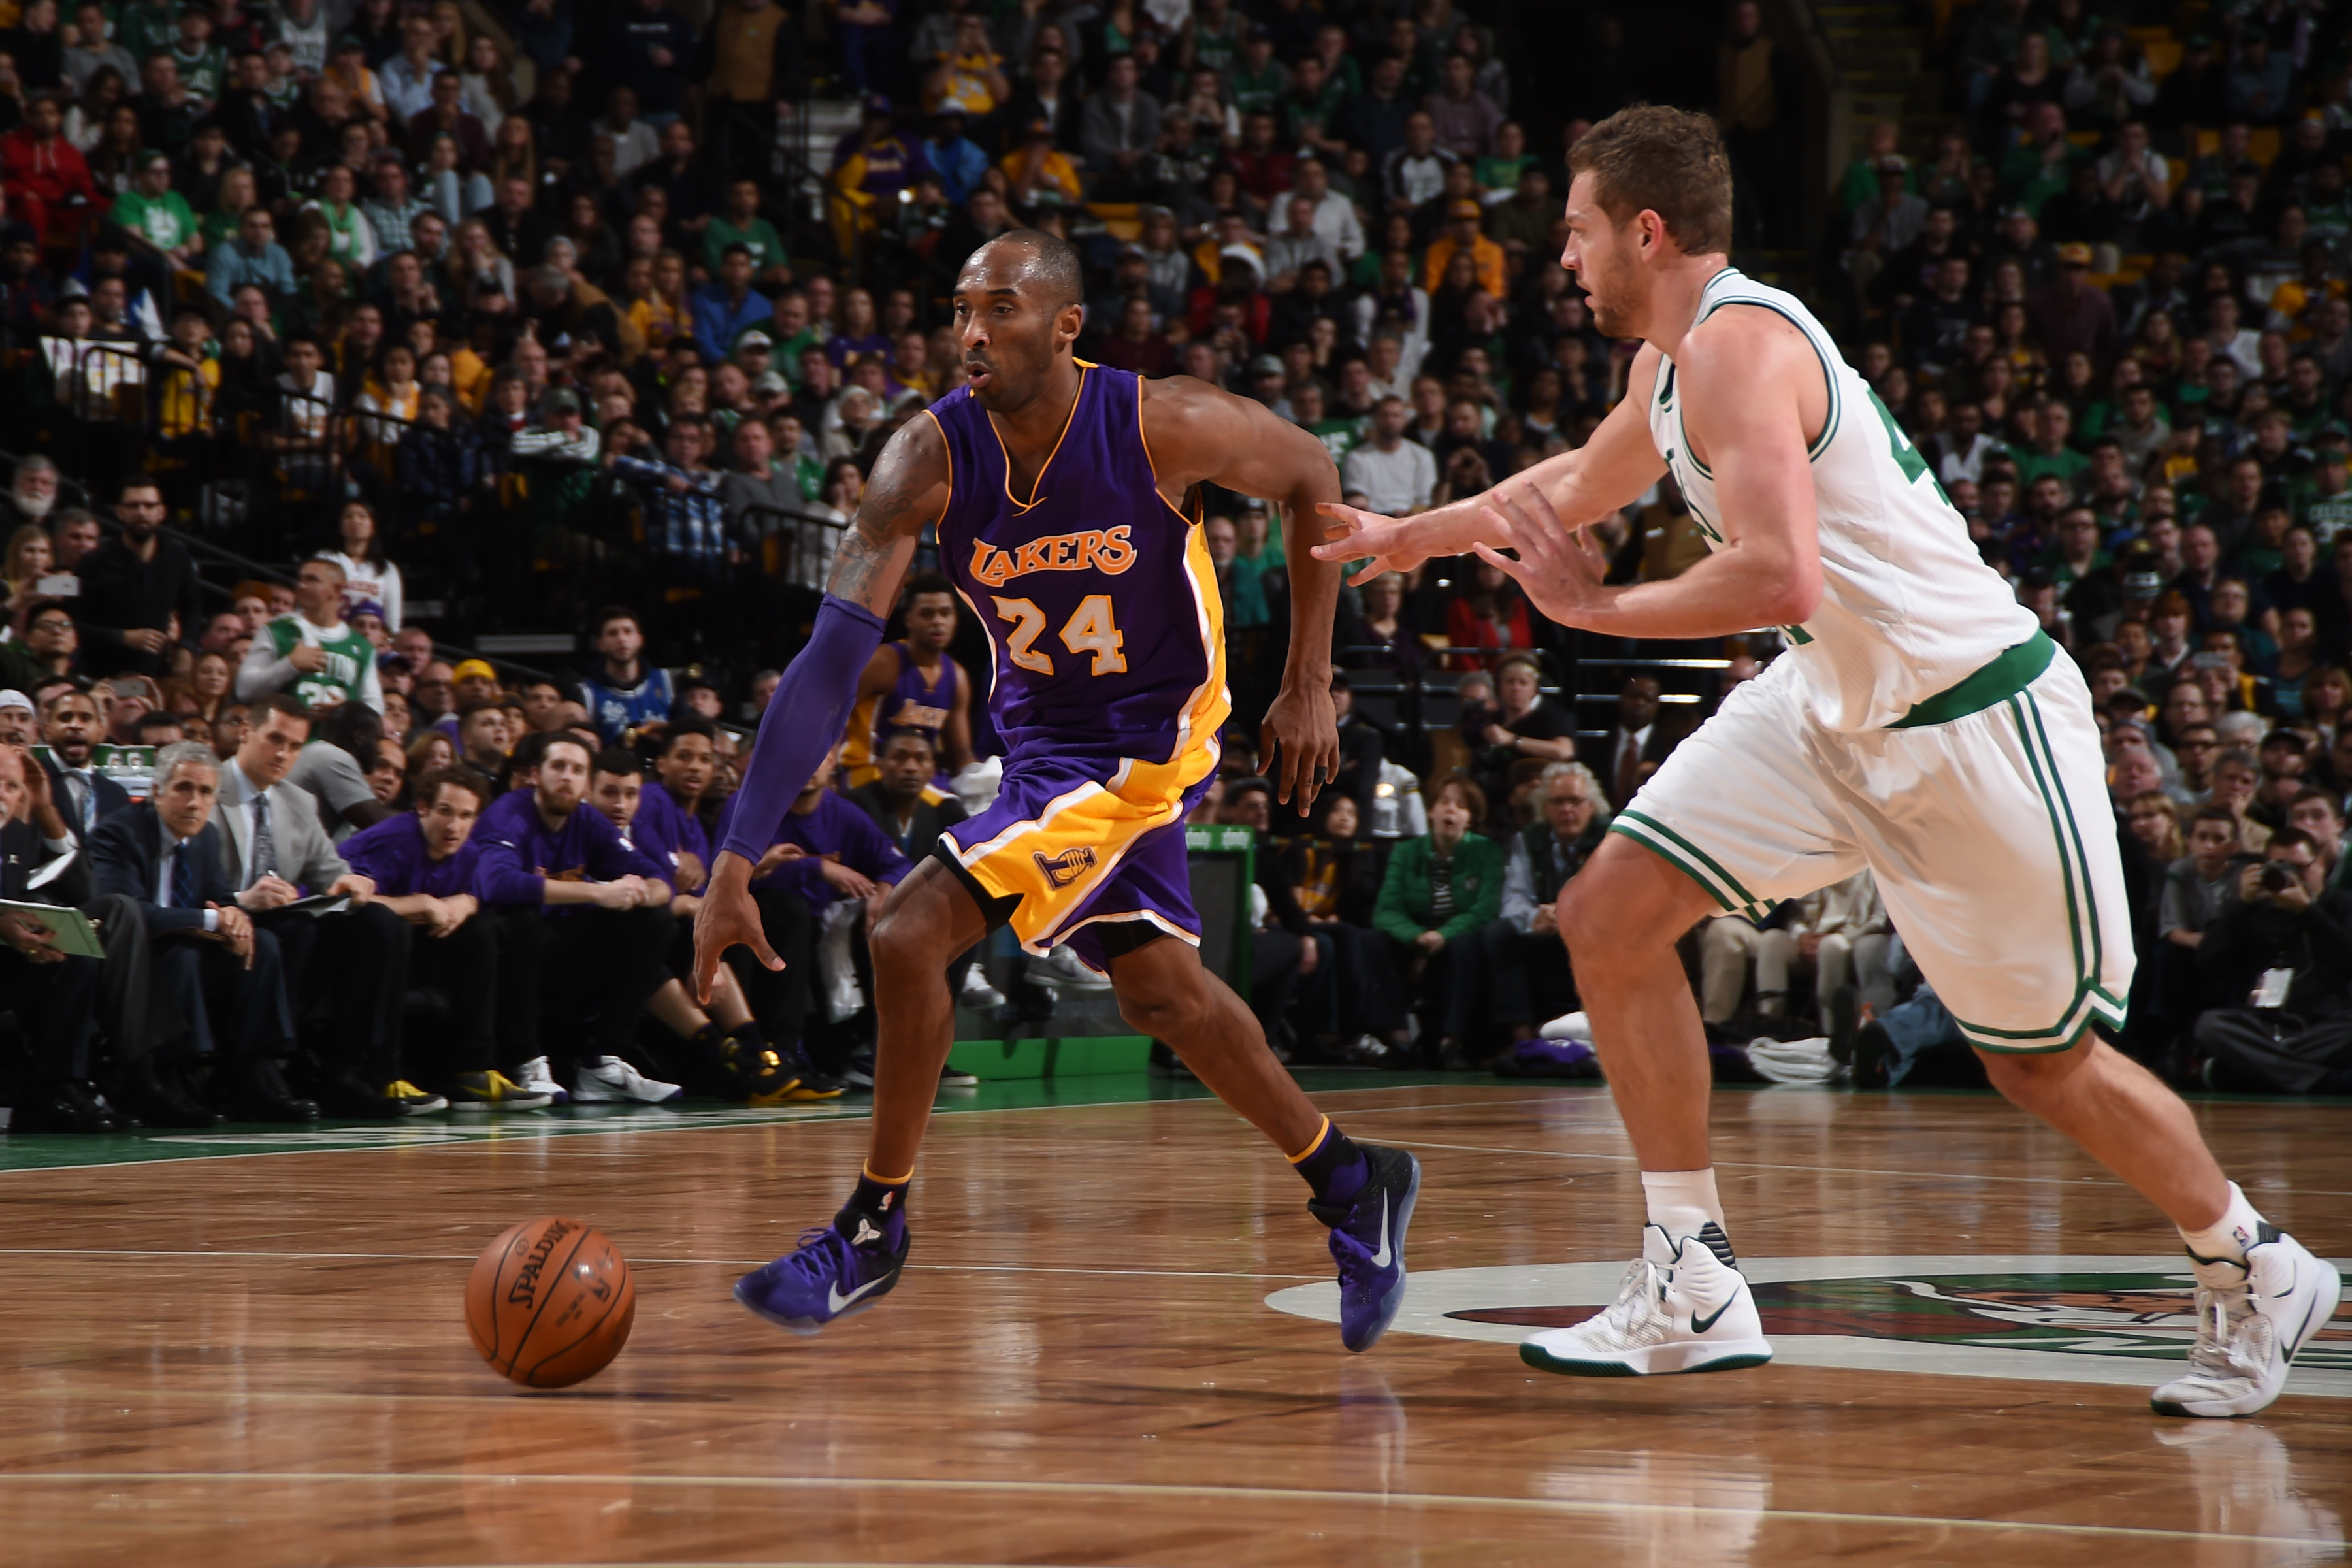 BOSTON, MA - DECEMBER 30: Kobe Bryant #24 of the Los Angeles Lakers handles the ball against the Boston Celtics on December 30, 2015 at the TD Garden in Boston, Massachusetts.  (Photo by Brian Babineau/NBAE via Getty Images)